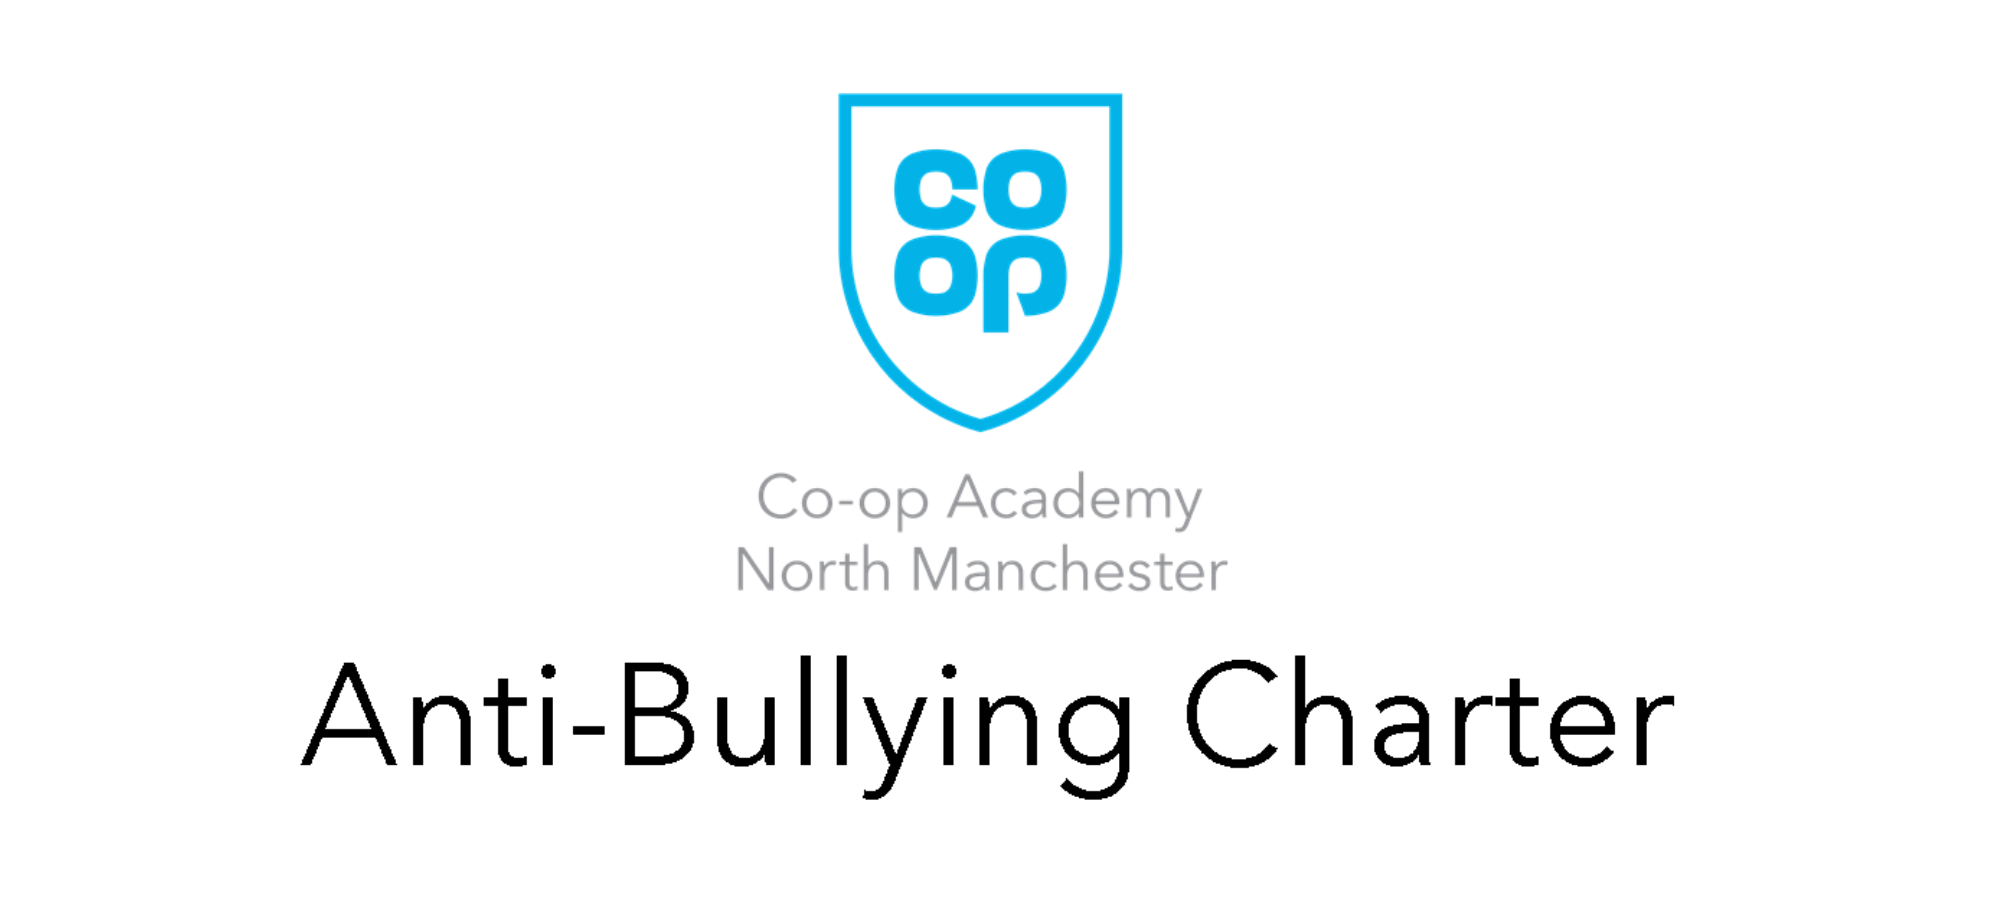 Our Anti-bullying Charter